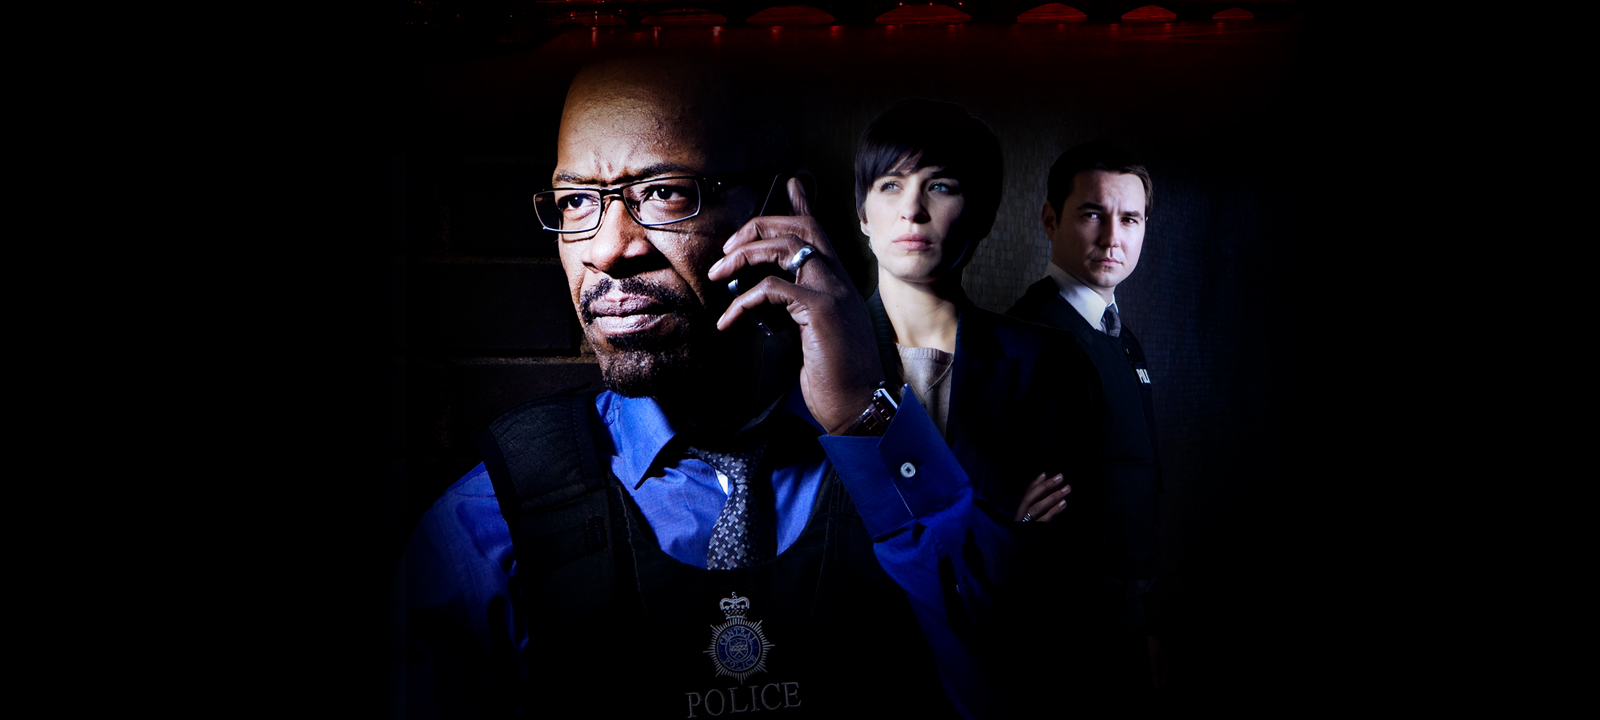 line-of-duty-S1-season-1-key-art-800x600_MobileWeb_HomeHero